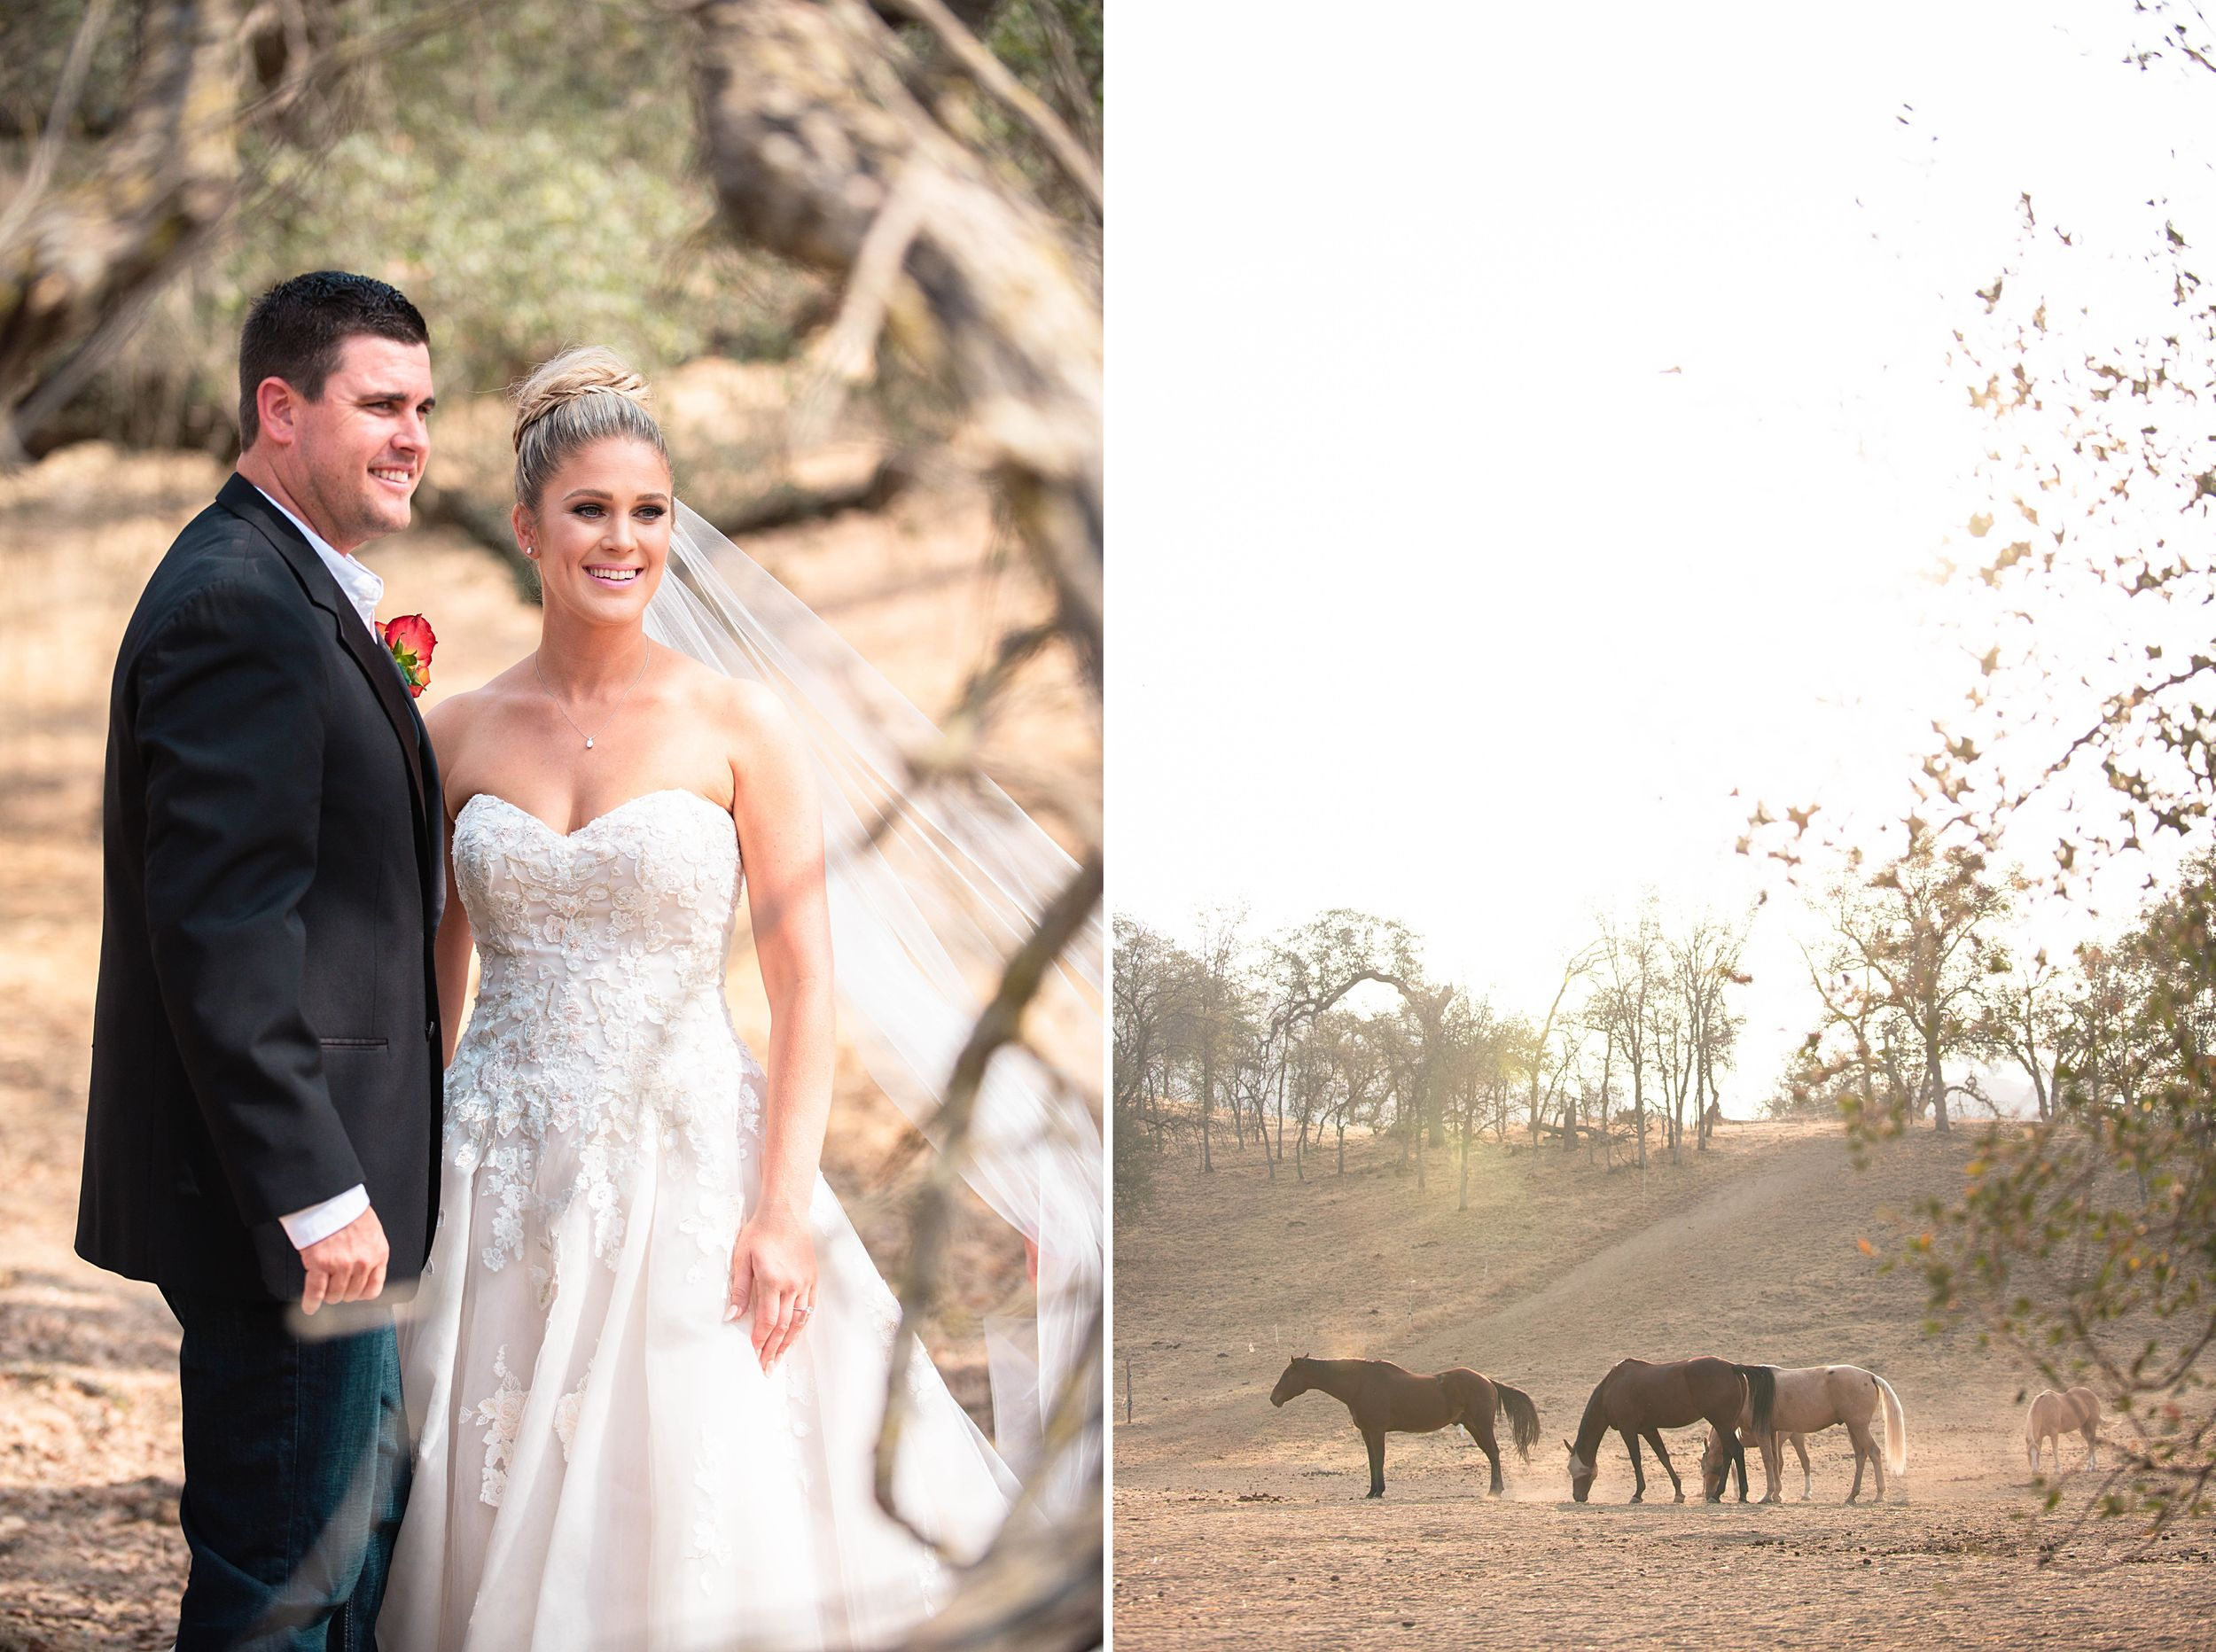 outdoor wedding in three rivers california riata ranch bride and groom horses